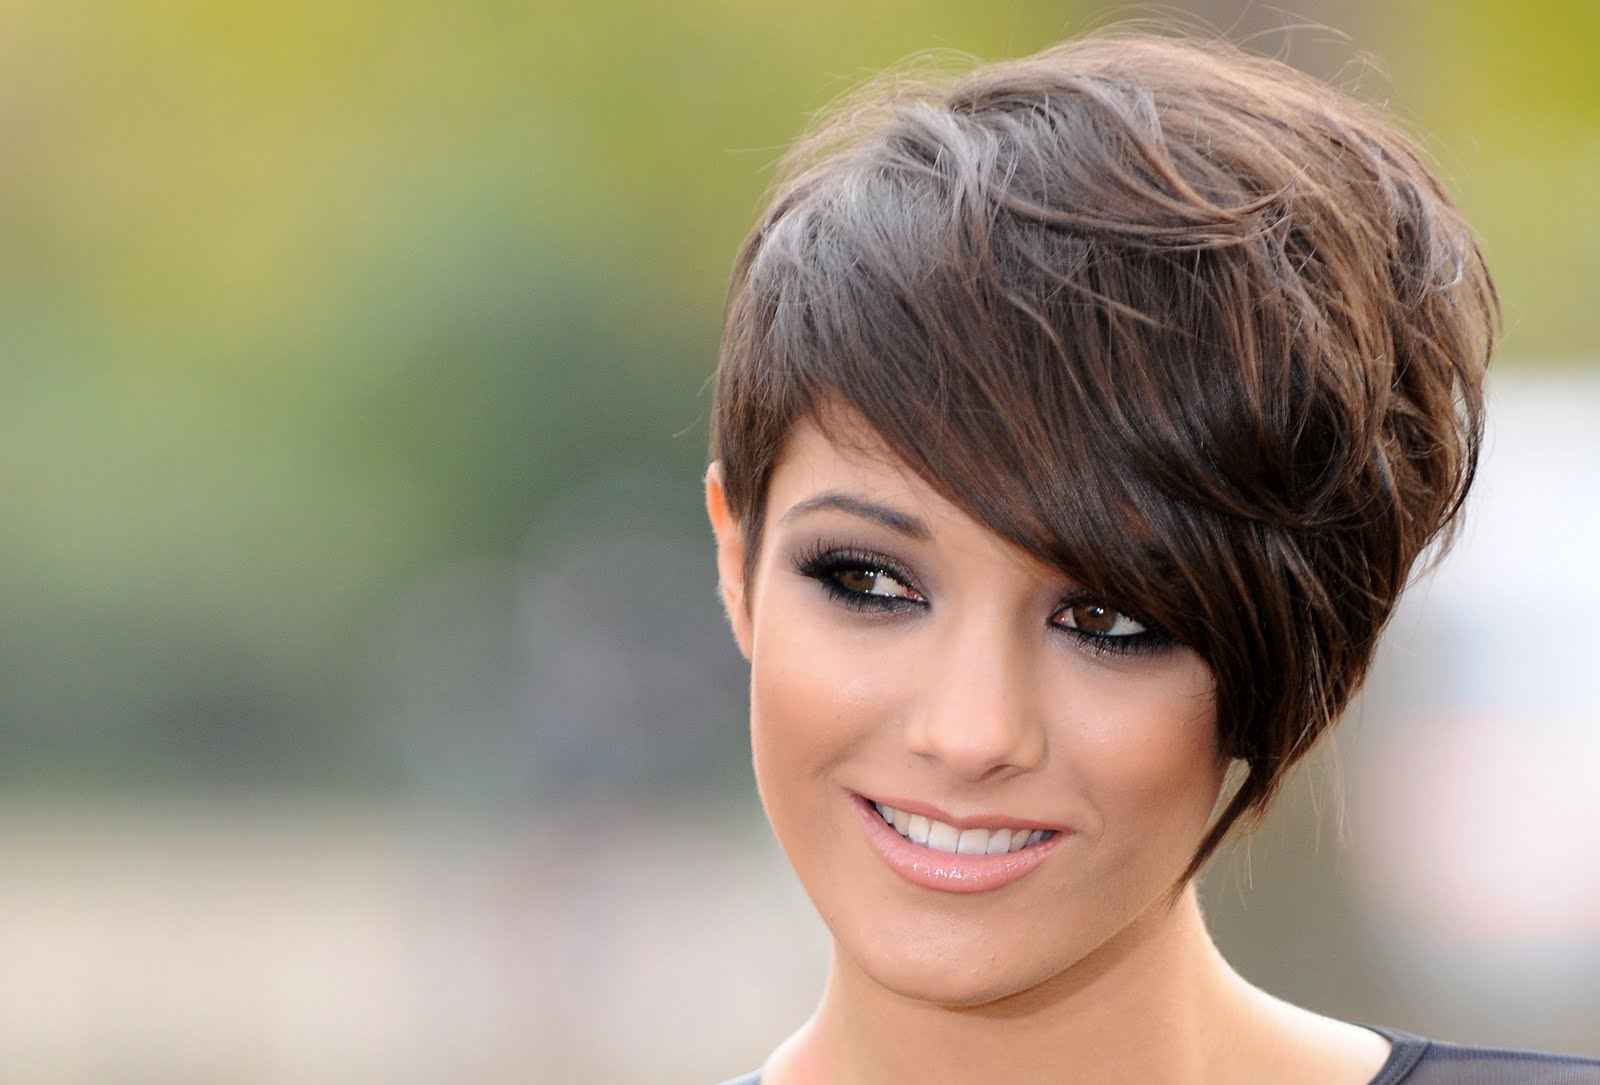 Pictures Of Photos – Short Hairstyles For Women ]:=  Intended For Choppy Short Hairstyles For Older Women (View 21 of 25)